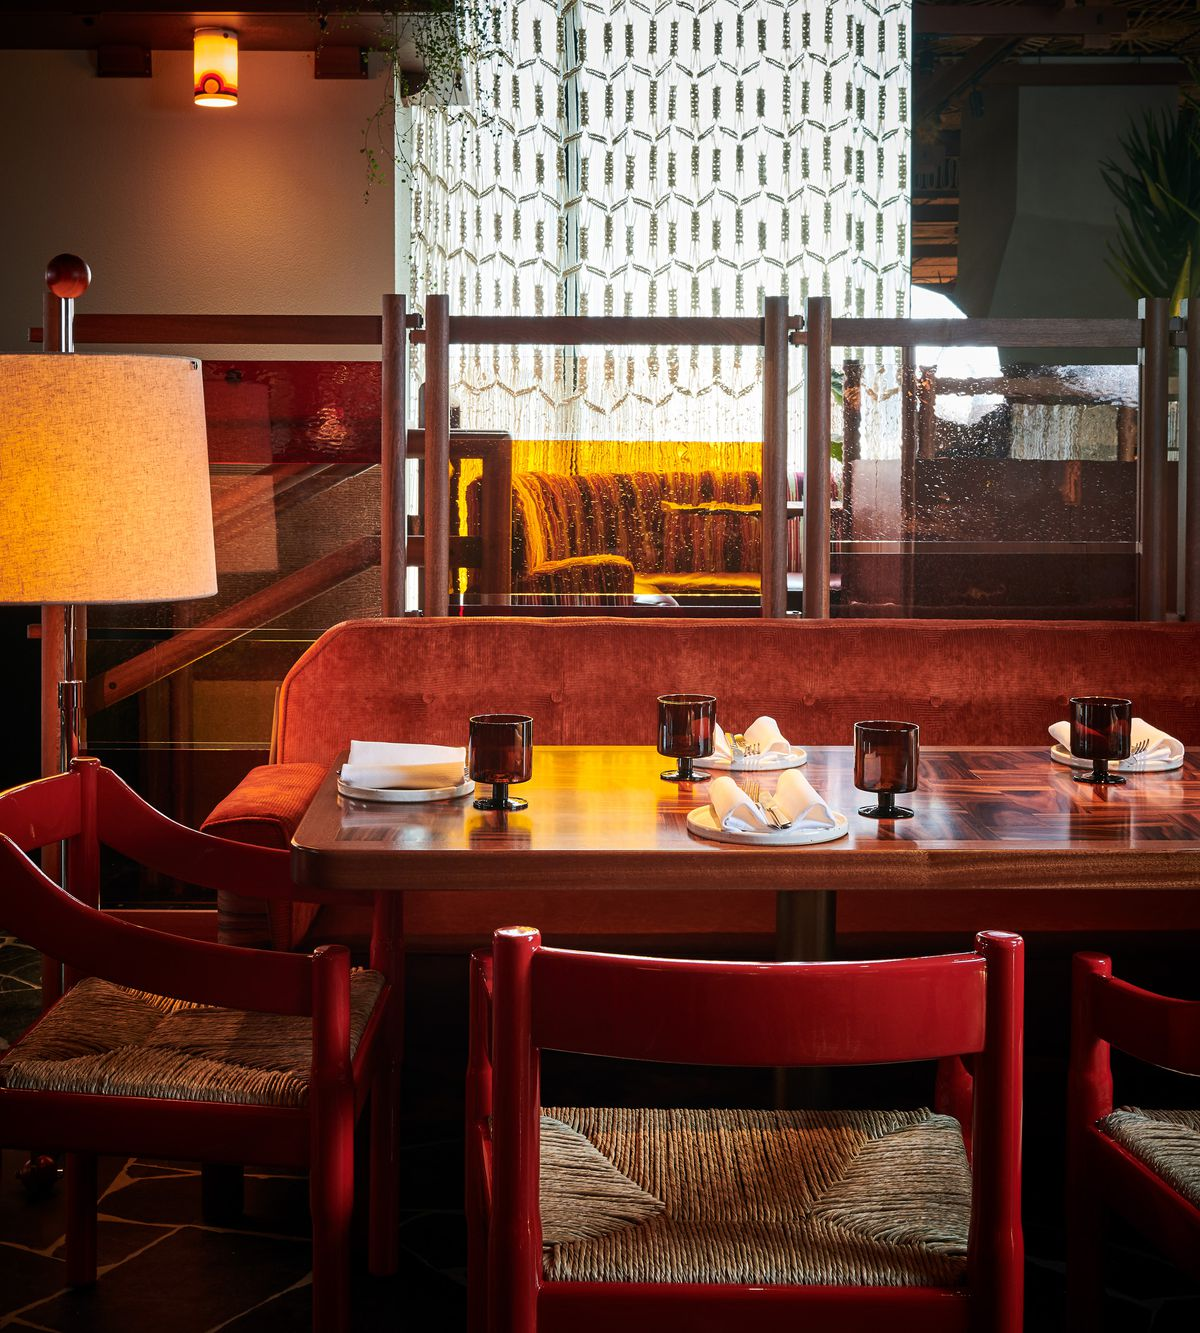 Tables at Decimo, the new King's Cross restaurant by chef Peter Sanchez Iglesias at The Standard Hotel London